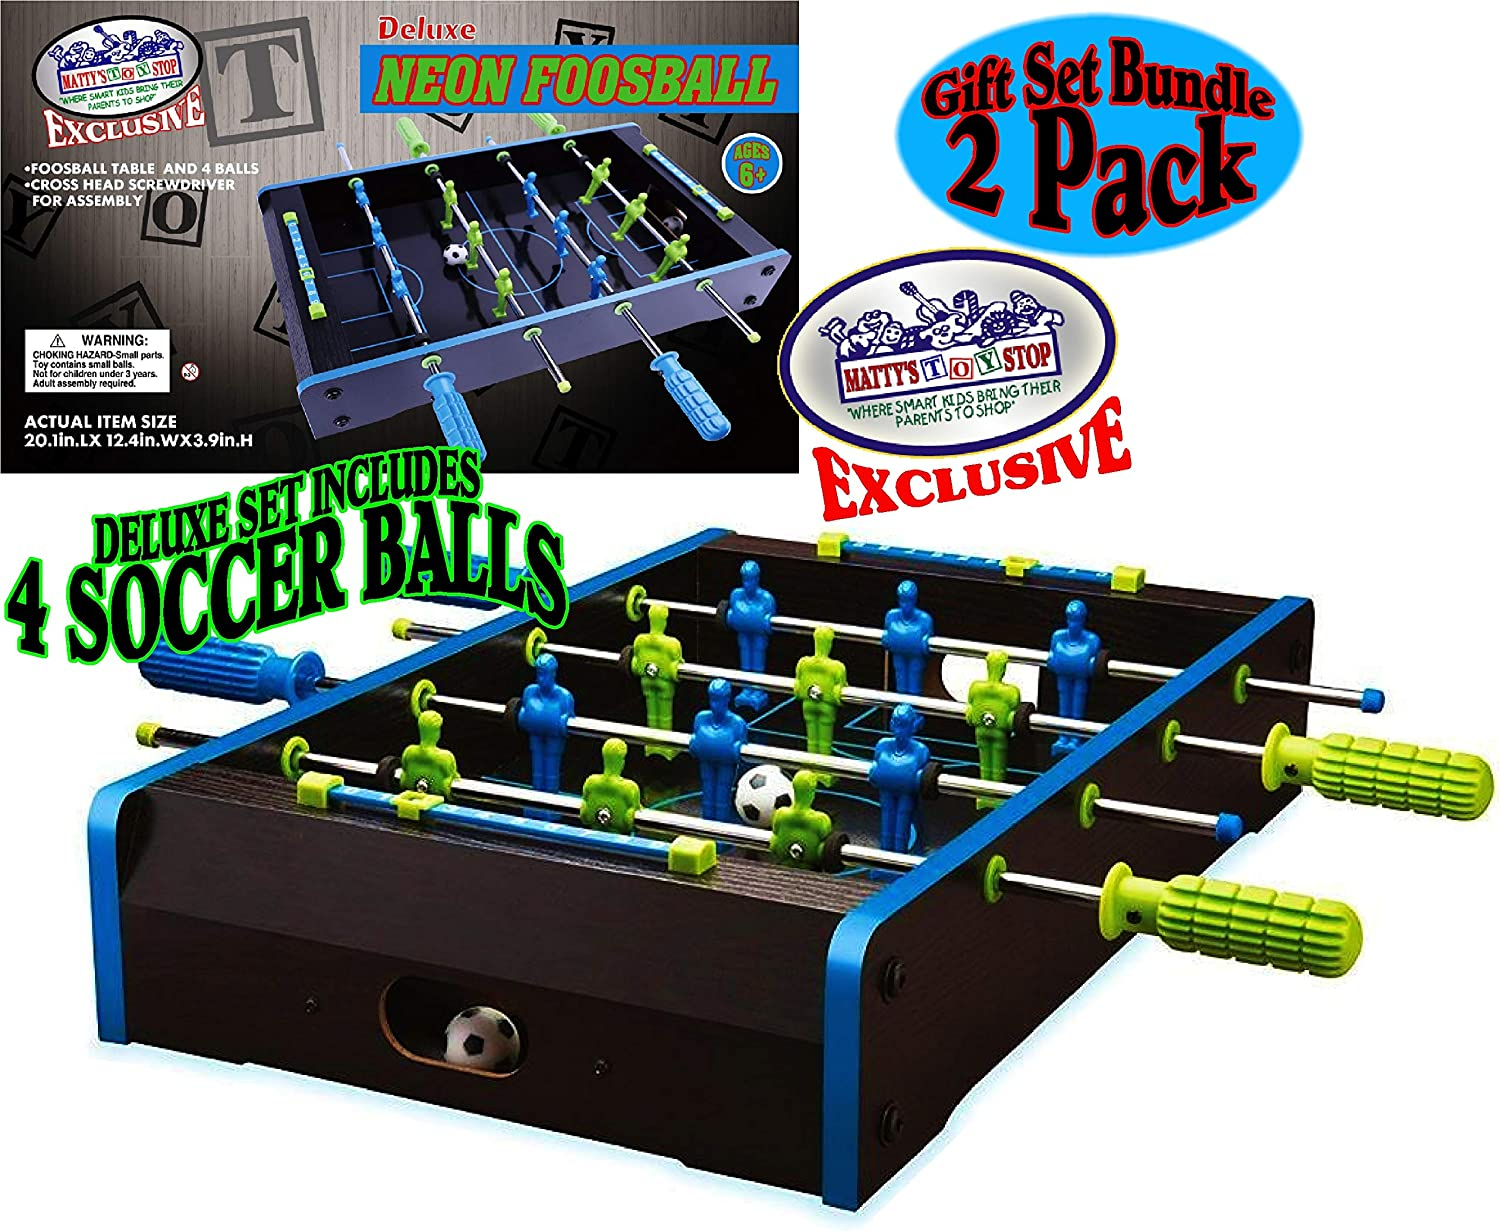 Matty's Toy Stop Deluxe Wooden Mini Tabletop NEON Air Hockey (Extra Pucks) & NEON Foosball (Soccer) (Extra Balls) Games Gift Set Bundle - 2 Pack : Sports & Outdoors